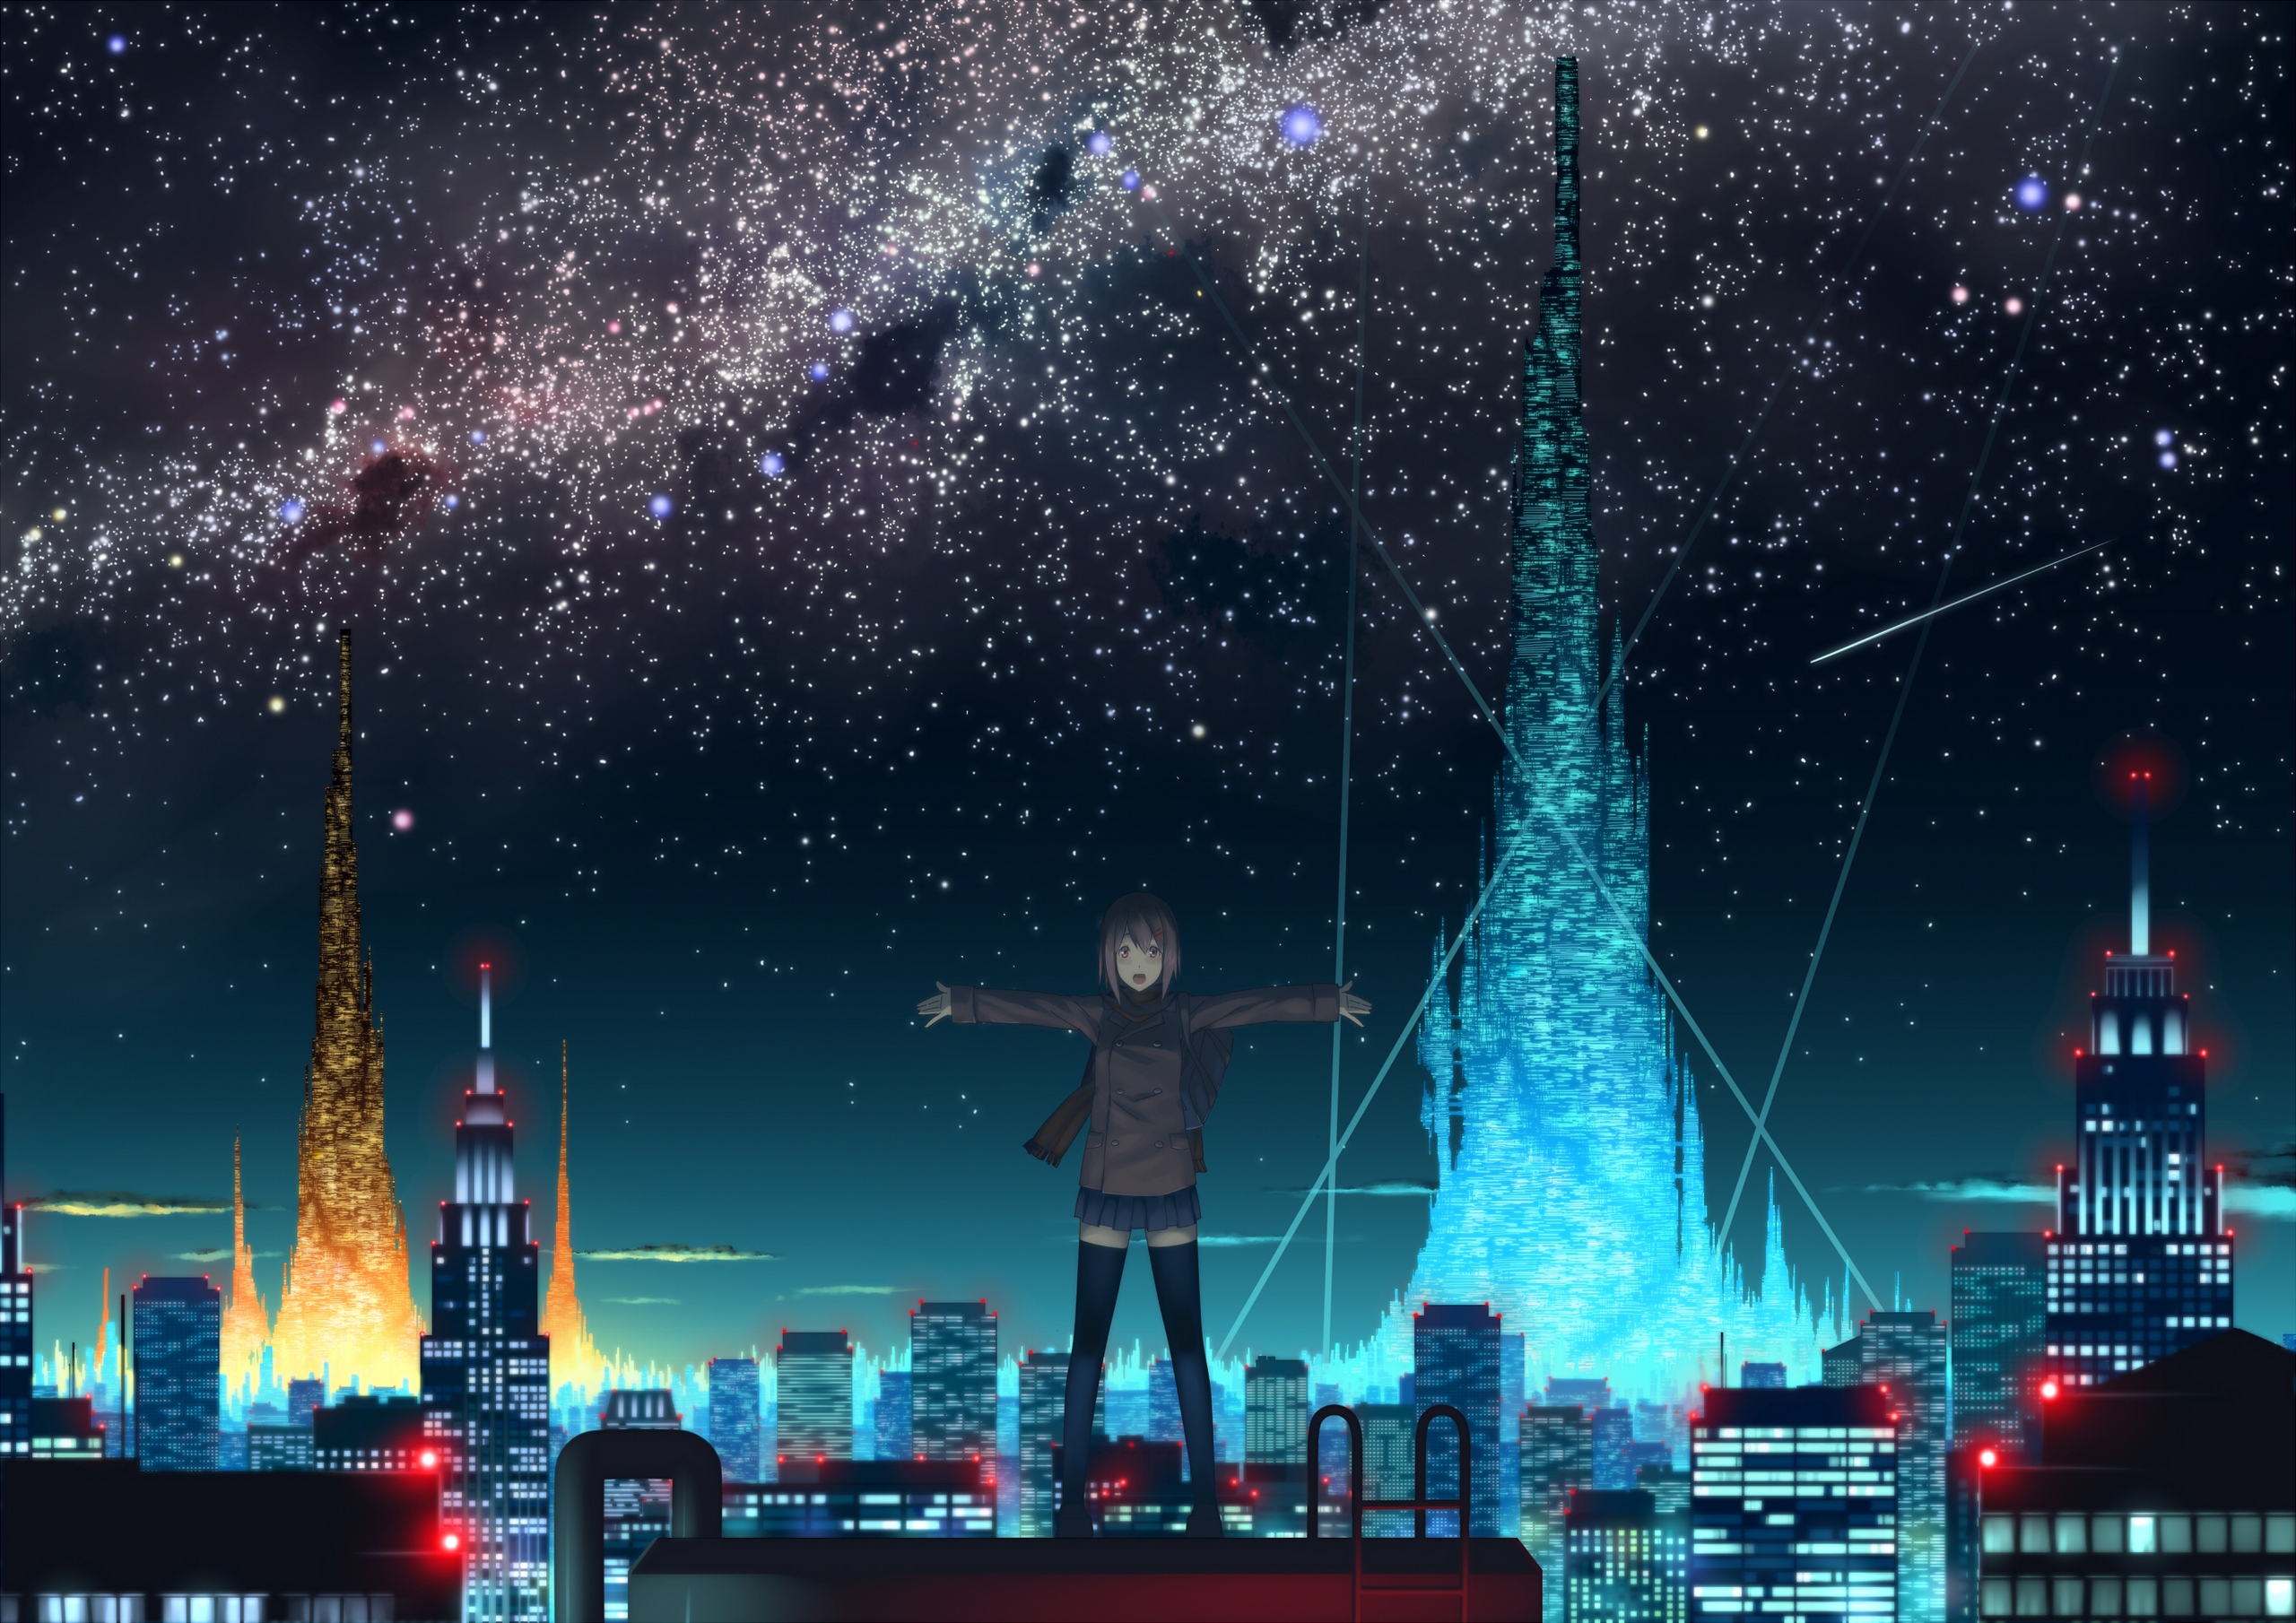 Anime Scenery - Anime Photo (28137818) - Fanpop